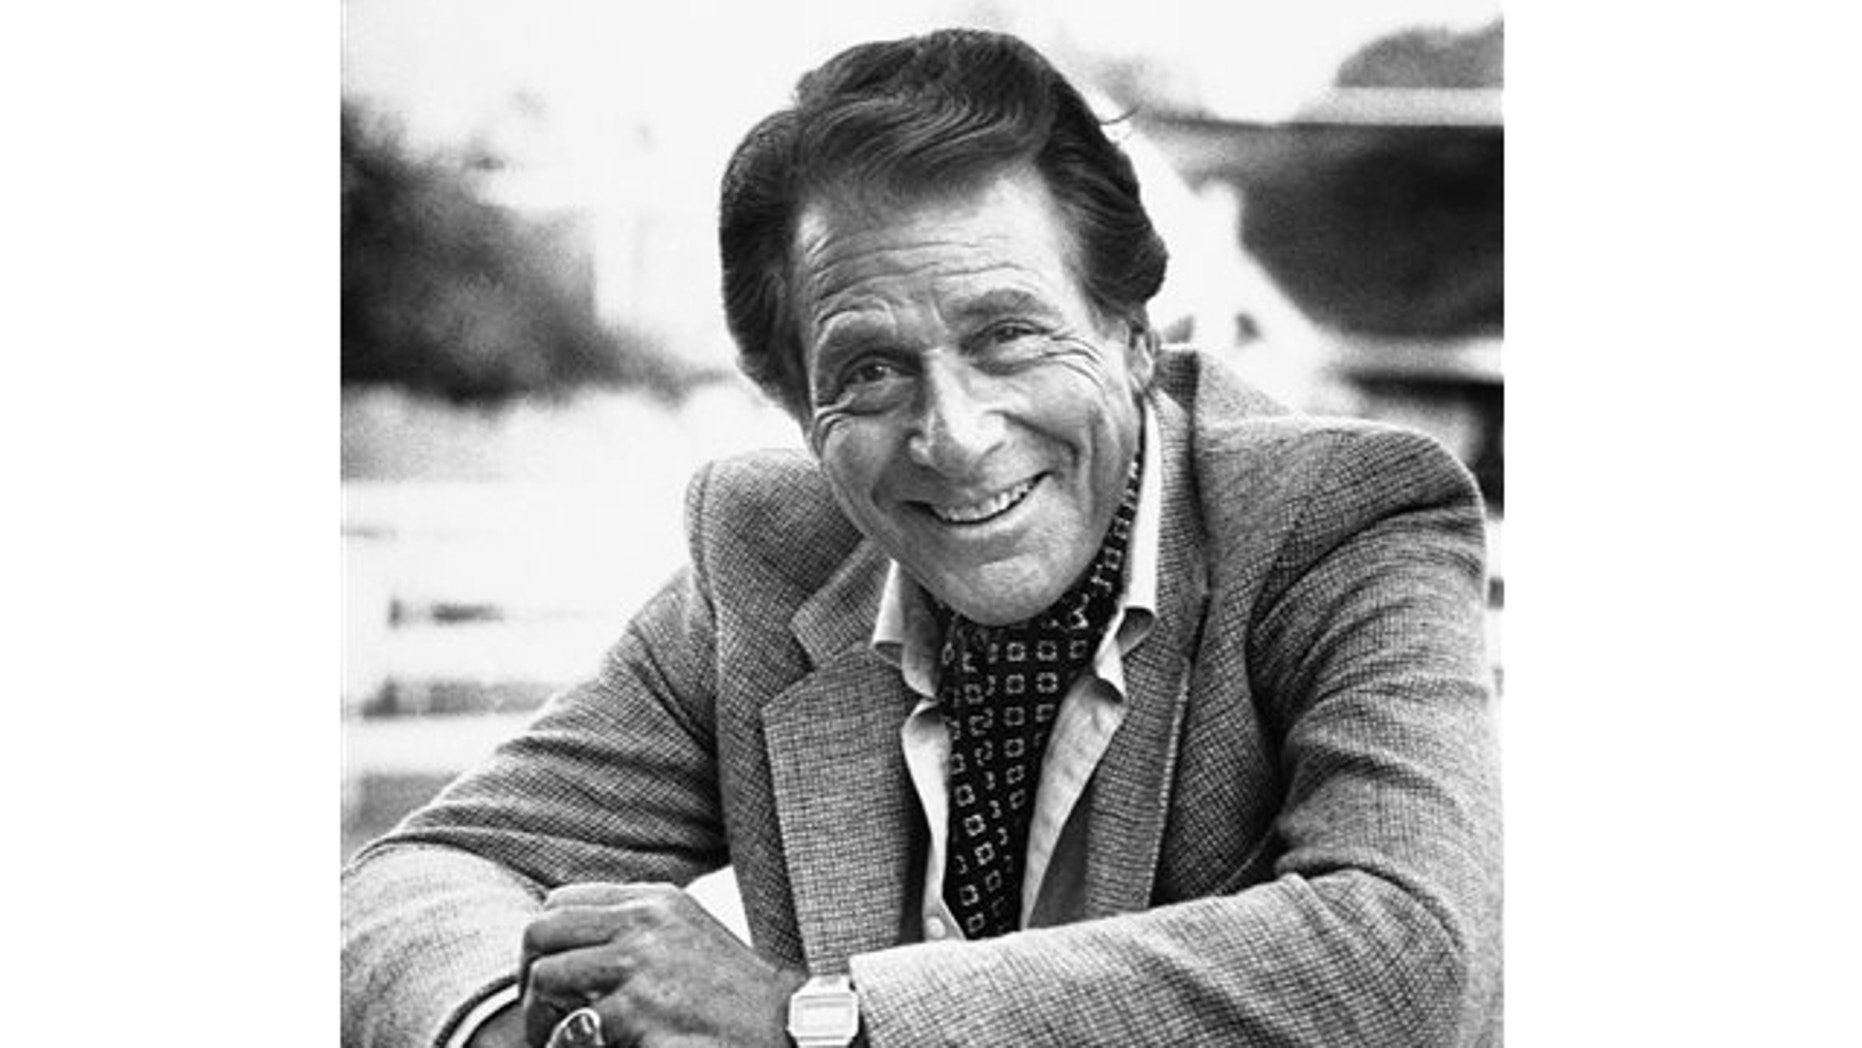 """FILE: Feb. 16, 1982: Veteran actor Efrem Zimbalist, Jr., known for his starring roles in """"77 Sunset Strip"""" and """"The FBI,"""" stands outside his home, in Los Angeles, Calif. Zimbalist, the son of famous musicians who gained television stardom in the 1950s-60s hit """"77 Sunset Strip"""" and later """"The FBI,"""" died Friday at his ranch in Solvang, Calif., at age 95."""